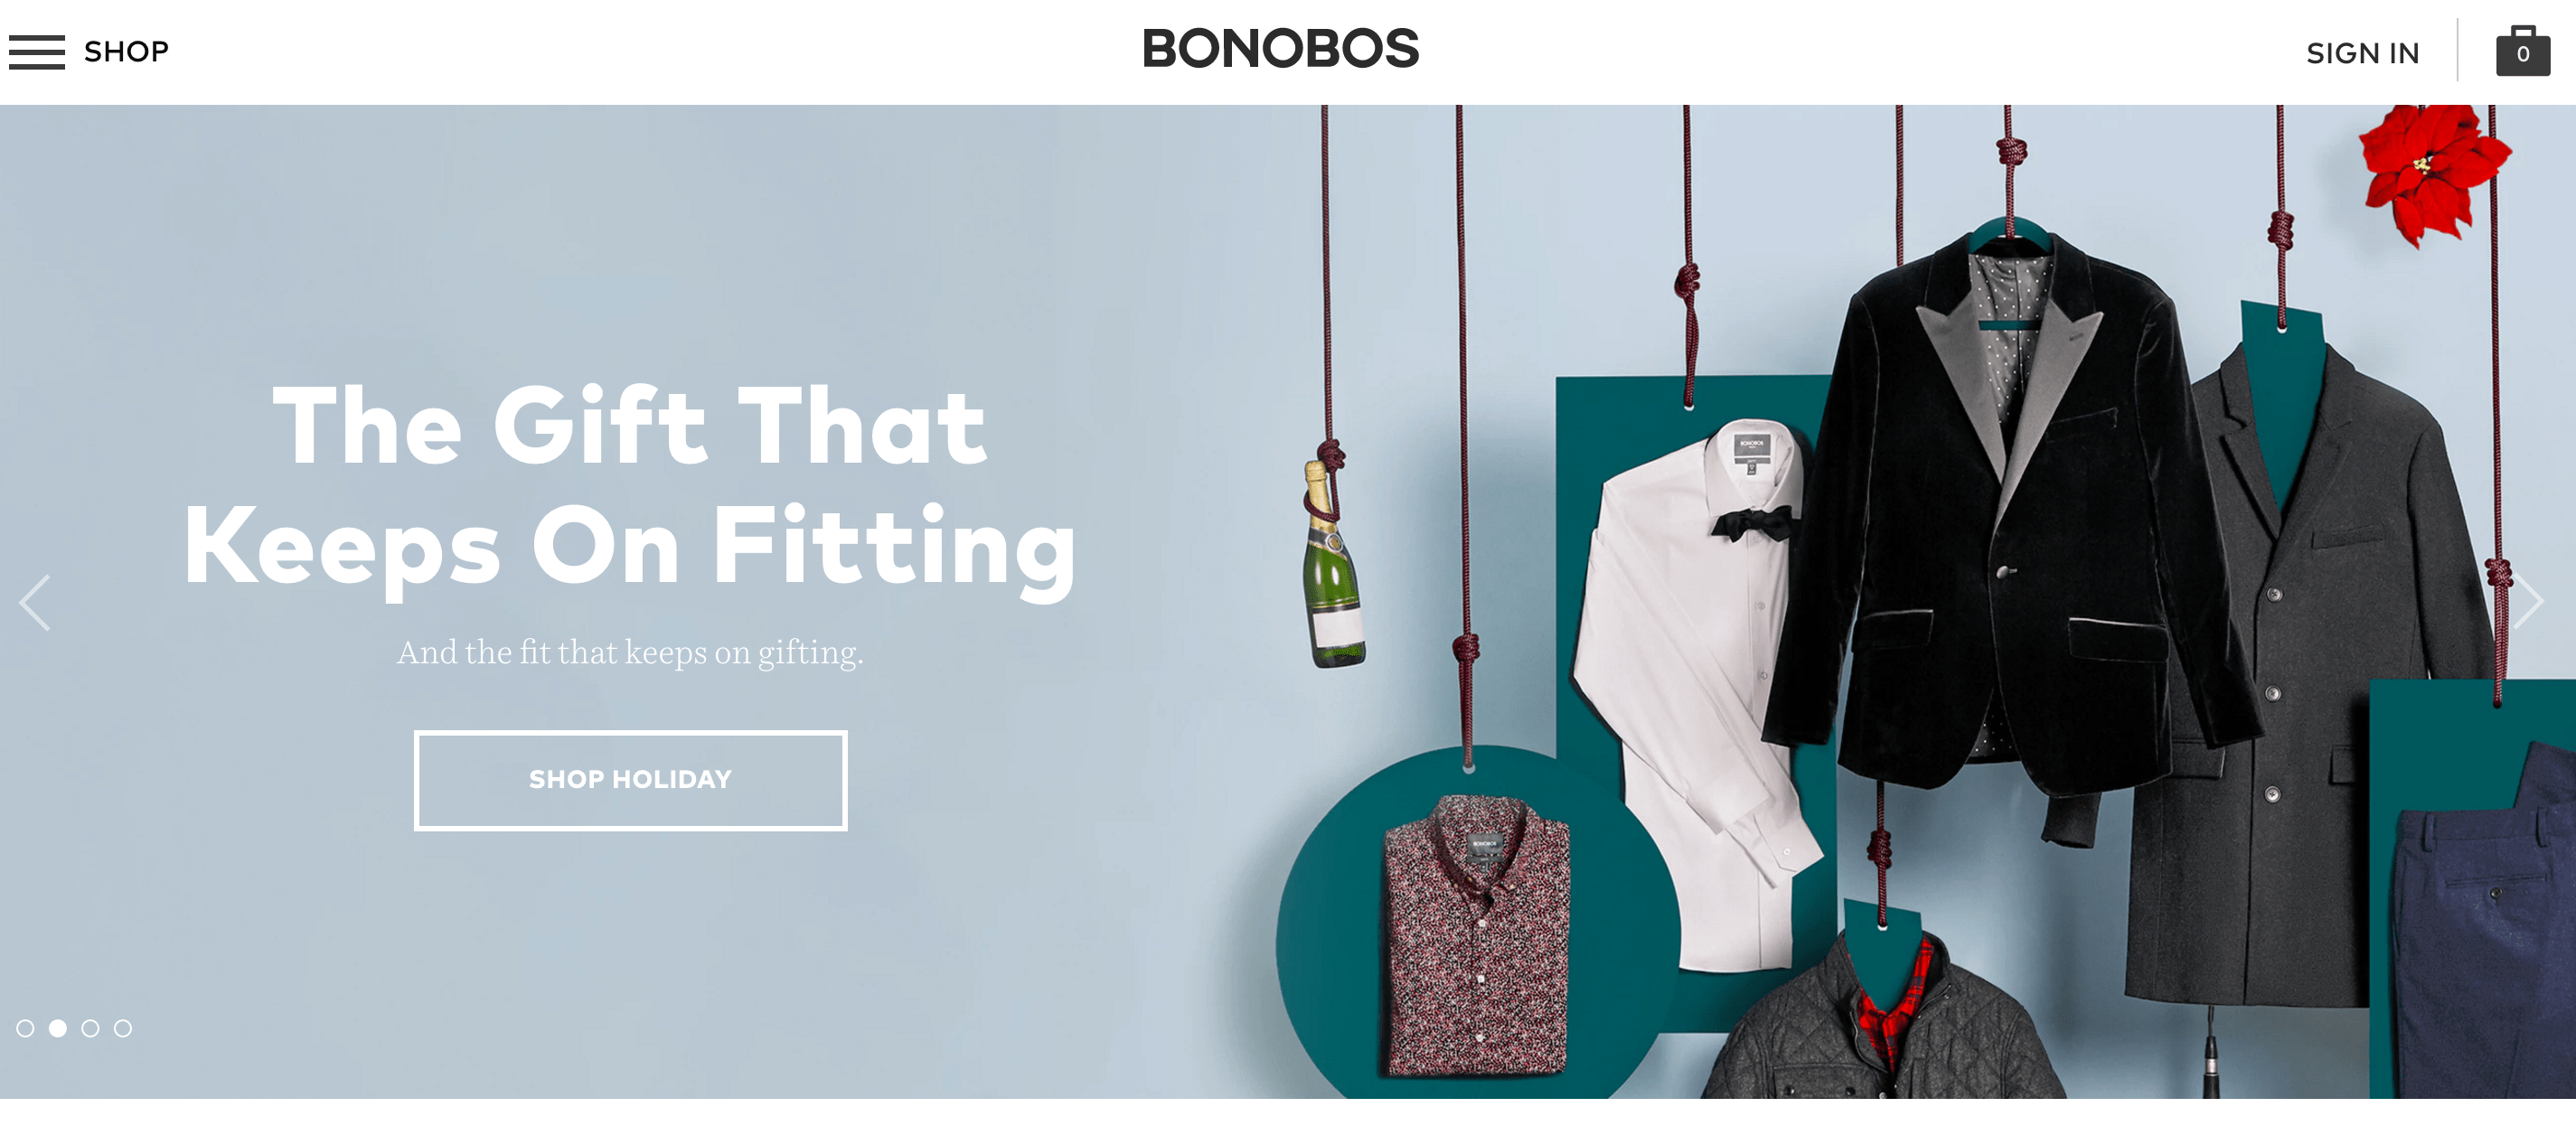 Bonobos Coupons & Cash Back